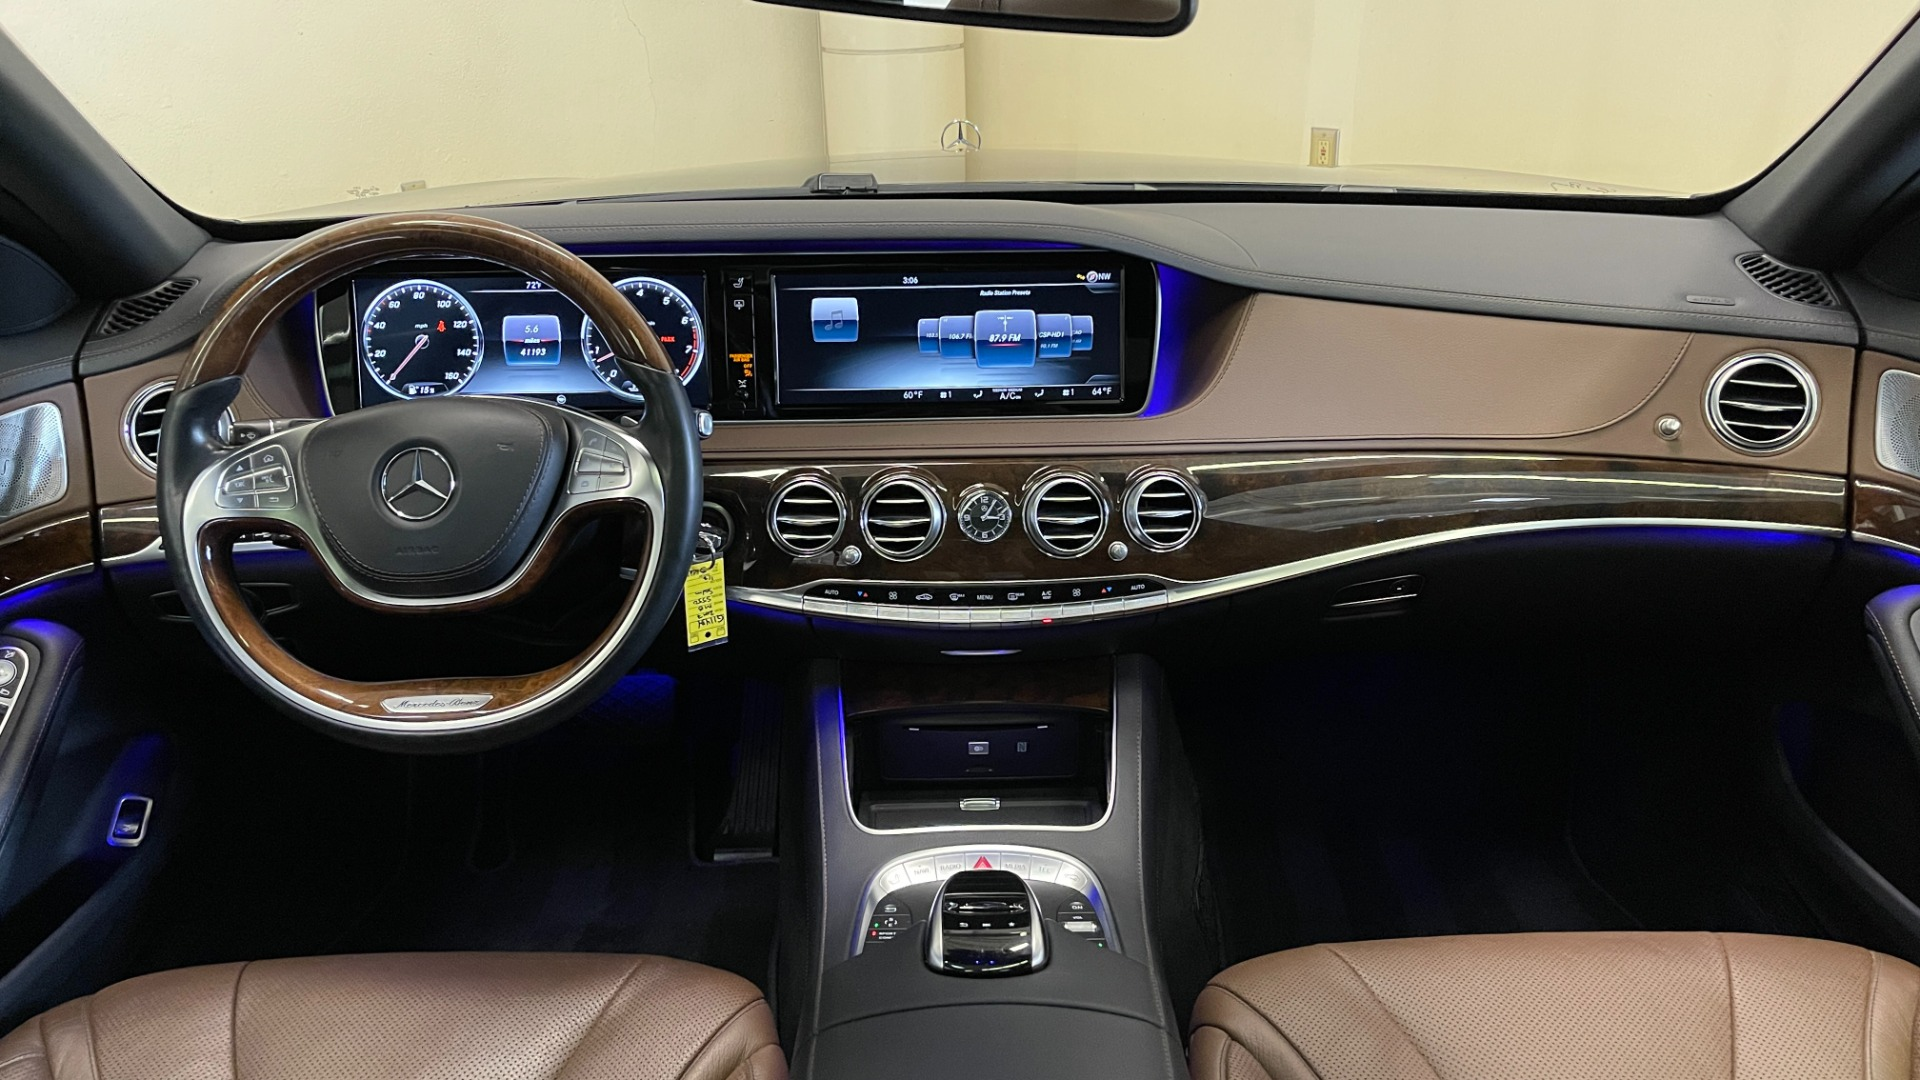 Used 2017 Mercedes-Benz S-CLASS S 550 4MATIC PREMIUM / NAV / BURMESTER / SUNROOF / REARVIEW for sale $58,995 at Formula Imports in Charlotte NC 28227 57